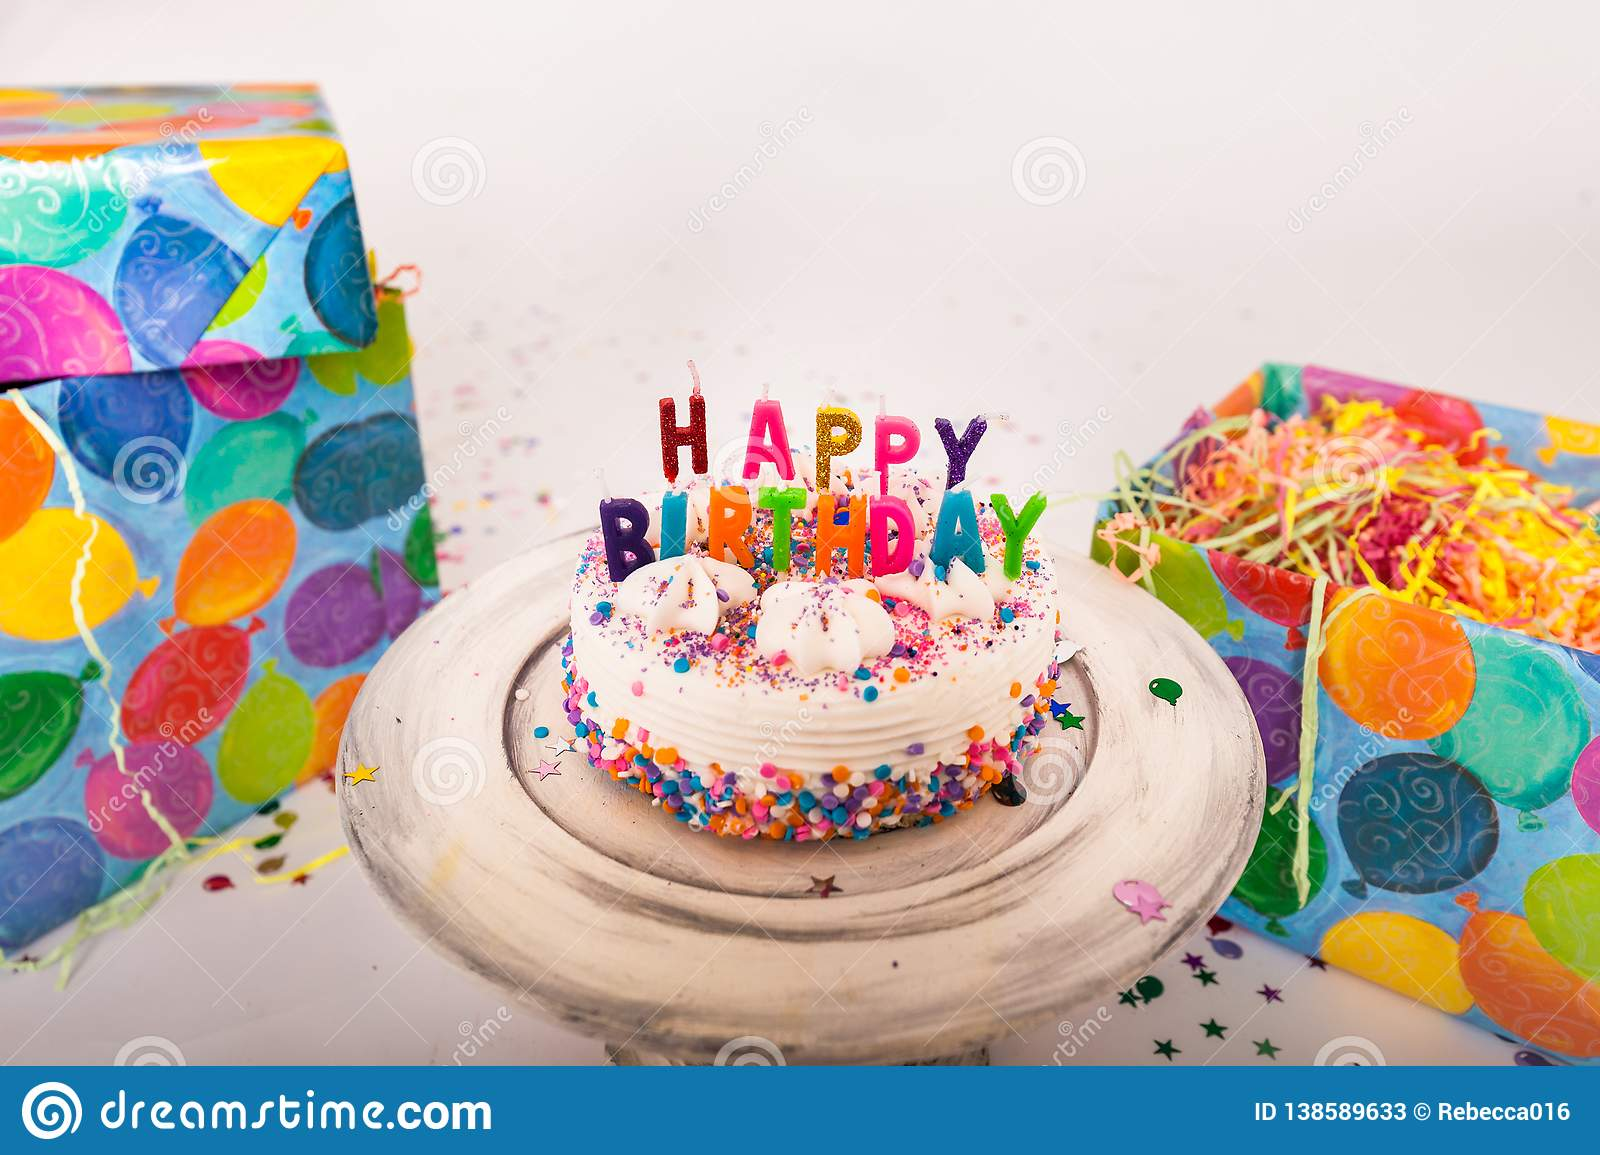 Decorated Birthday Cake Happy Candles On Stand Balloon Wrapping Paper Wrapped Gifts Solid Background